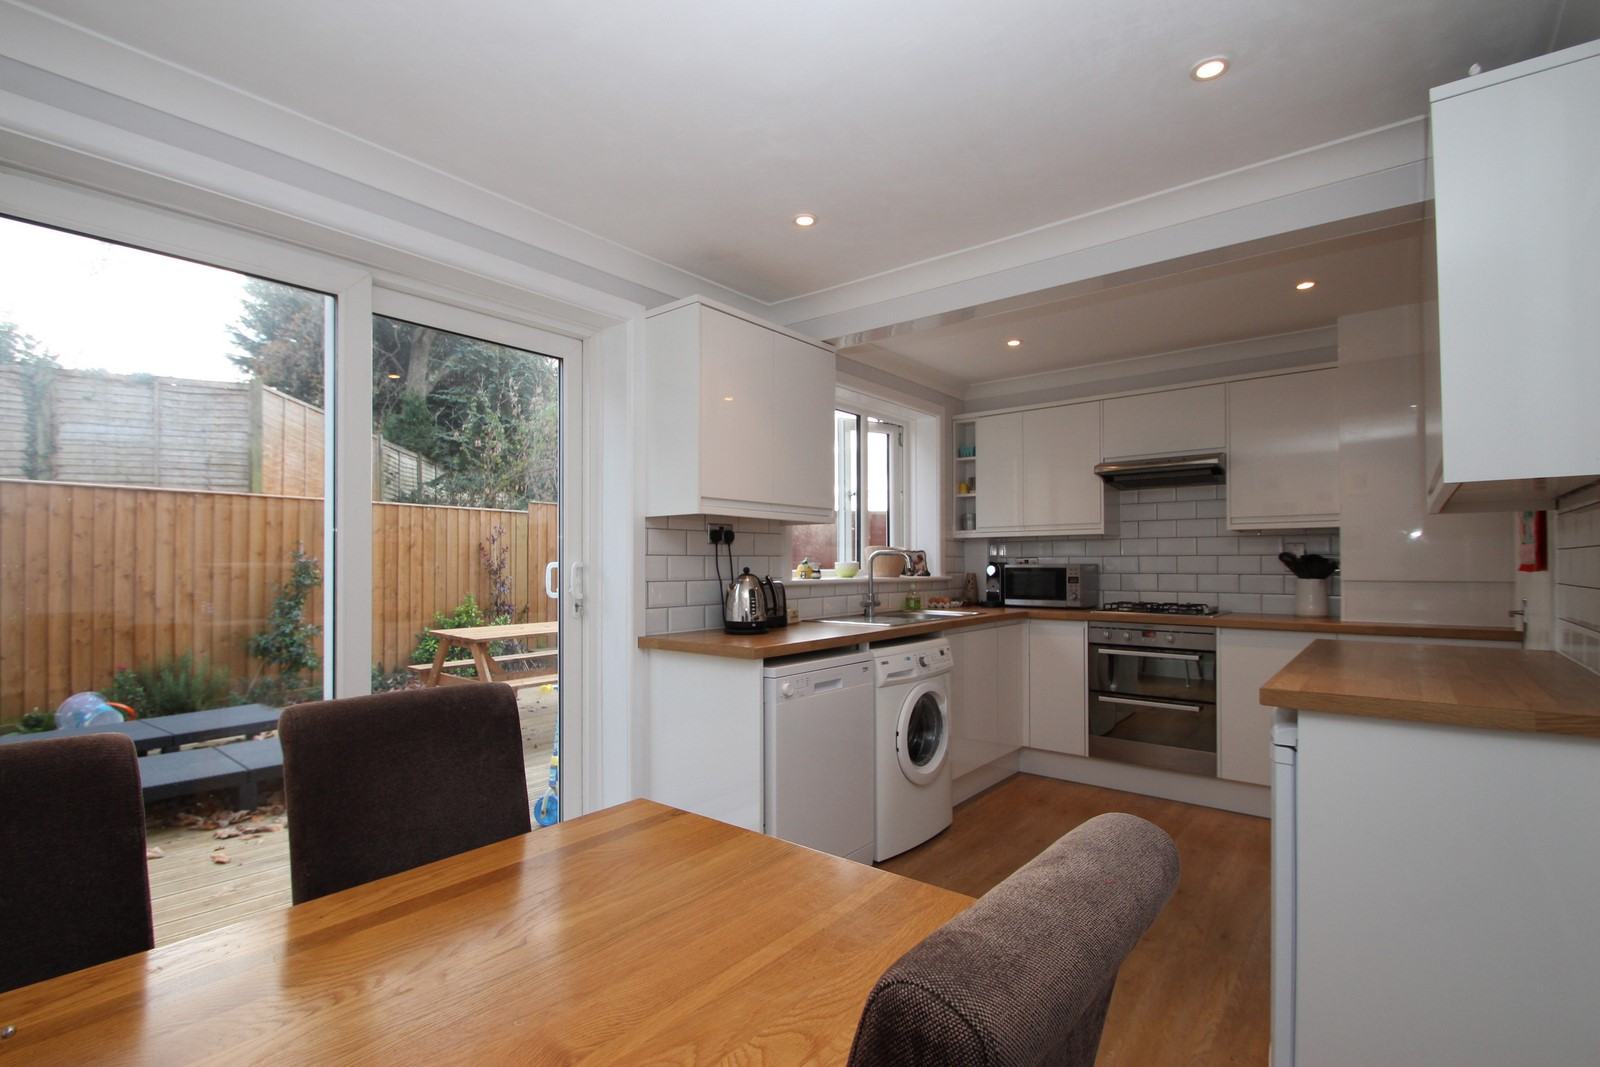 3 Bedroom House in Highcliffe